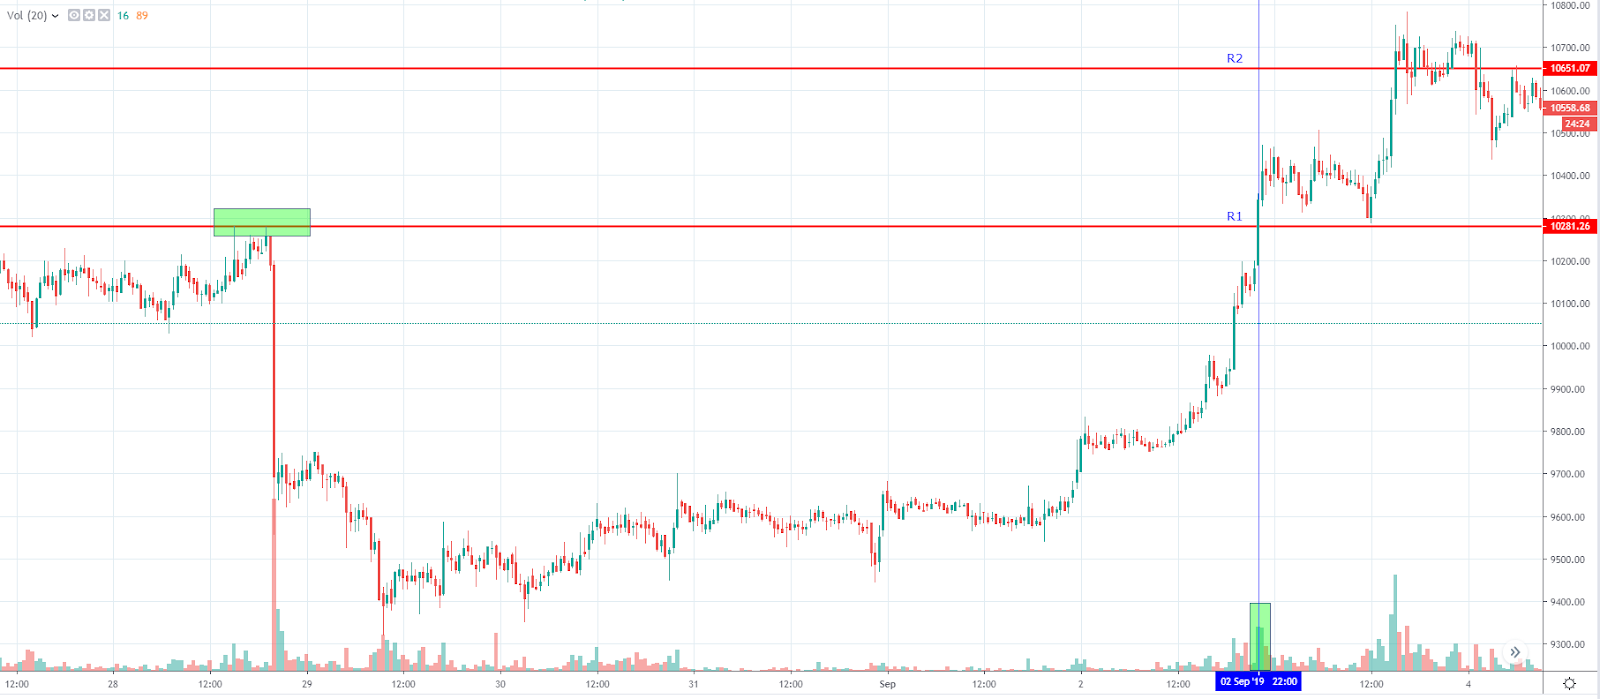 Breakout daily trading strategy sample (Source: TradingView)